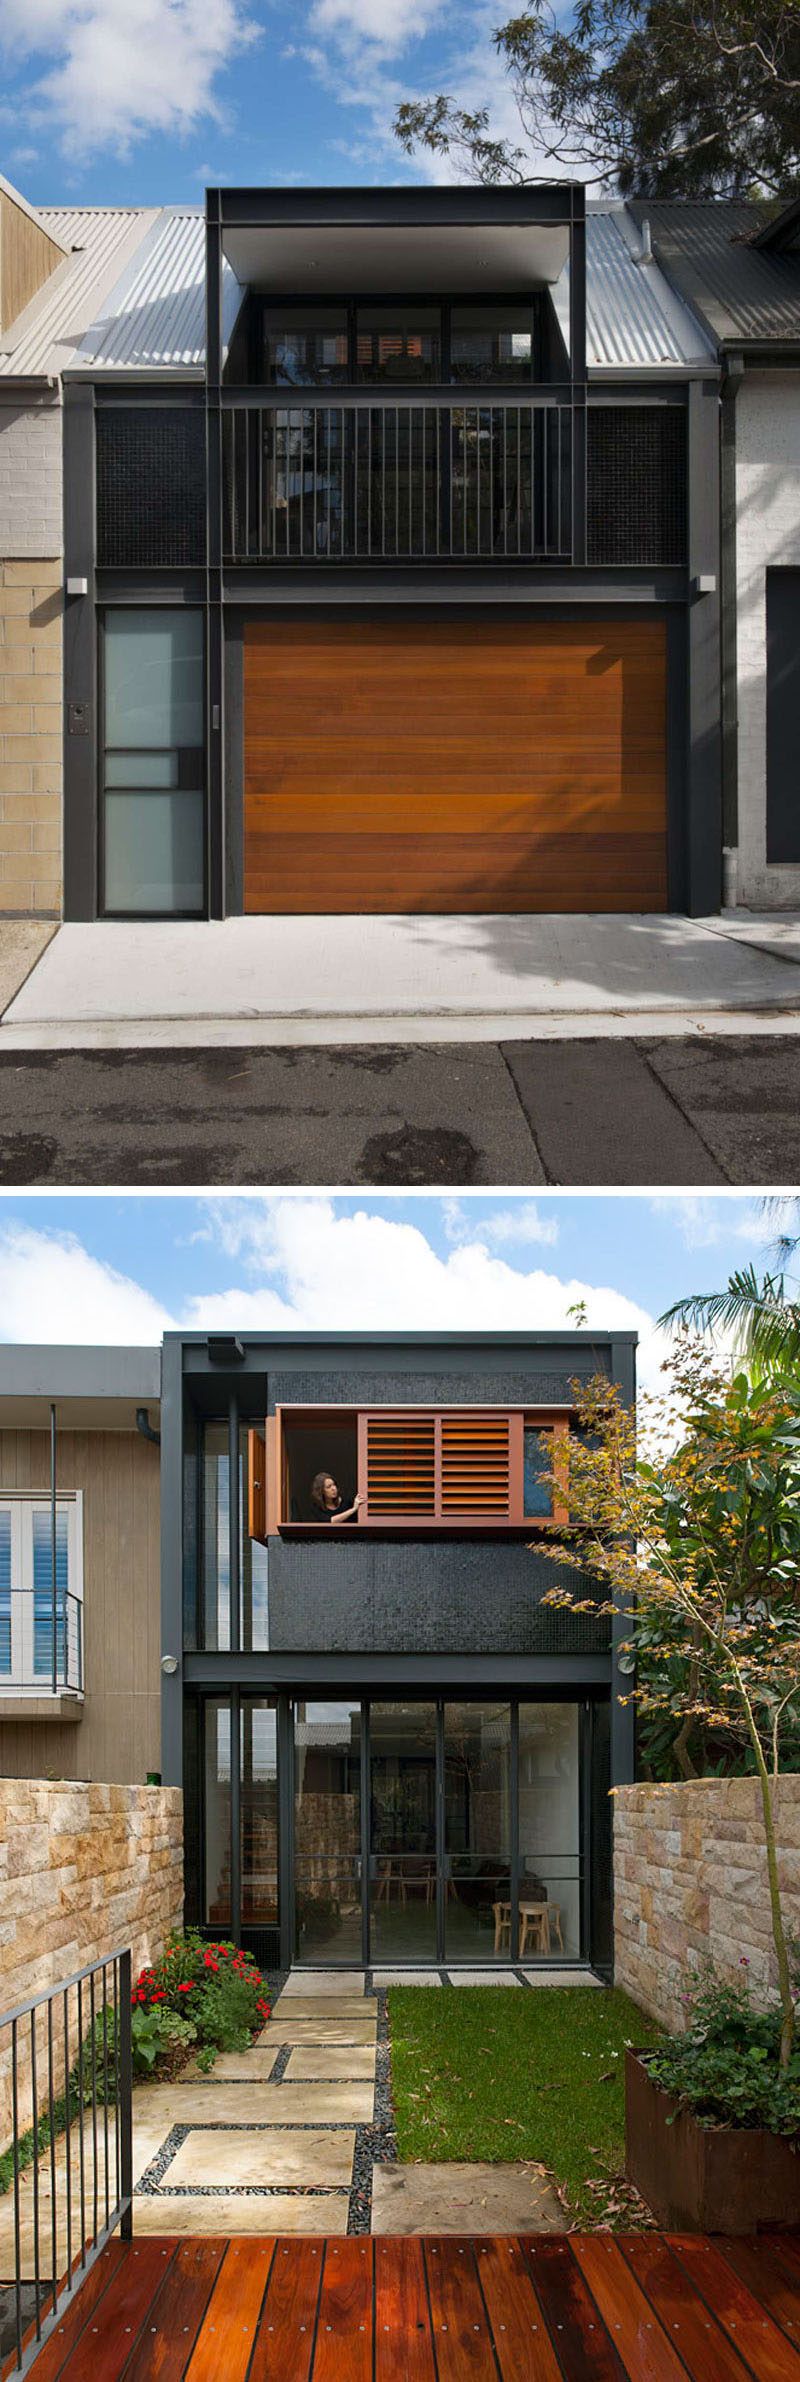 Celebrate Australia Day With These 14 Contemporary Australian Houses | This Sydney home opens up to an inner courtyard to enjoy an indoor/outdoor living.